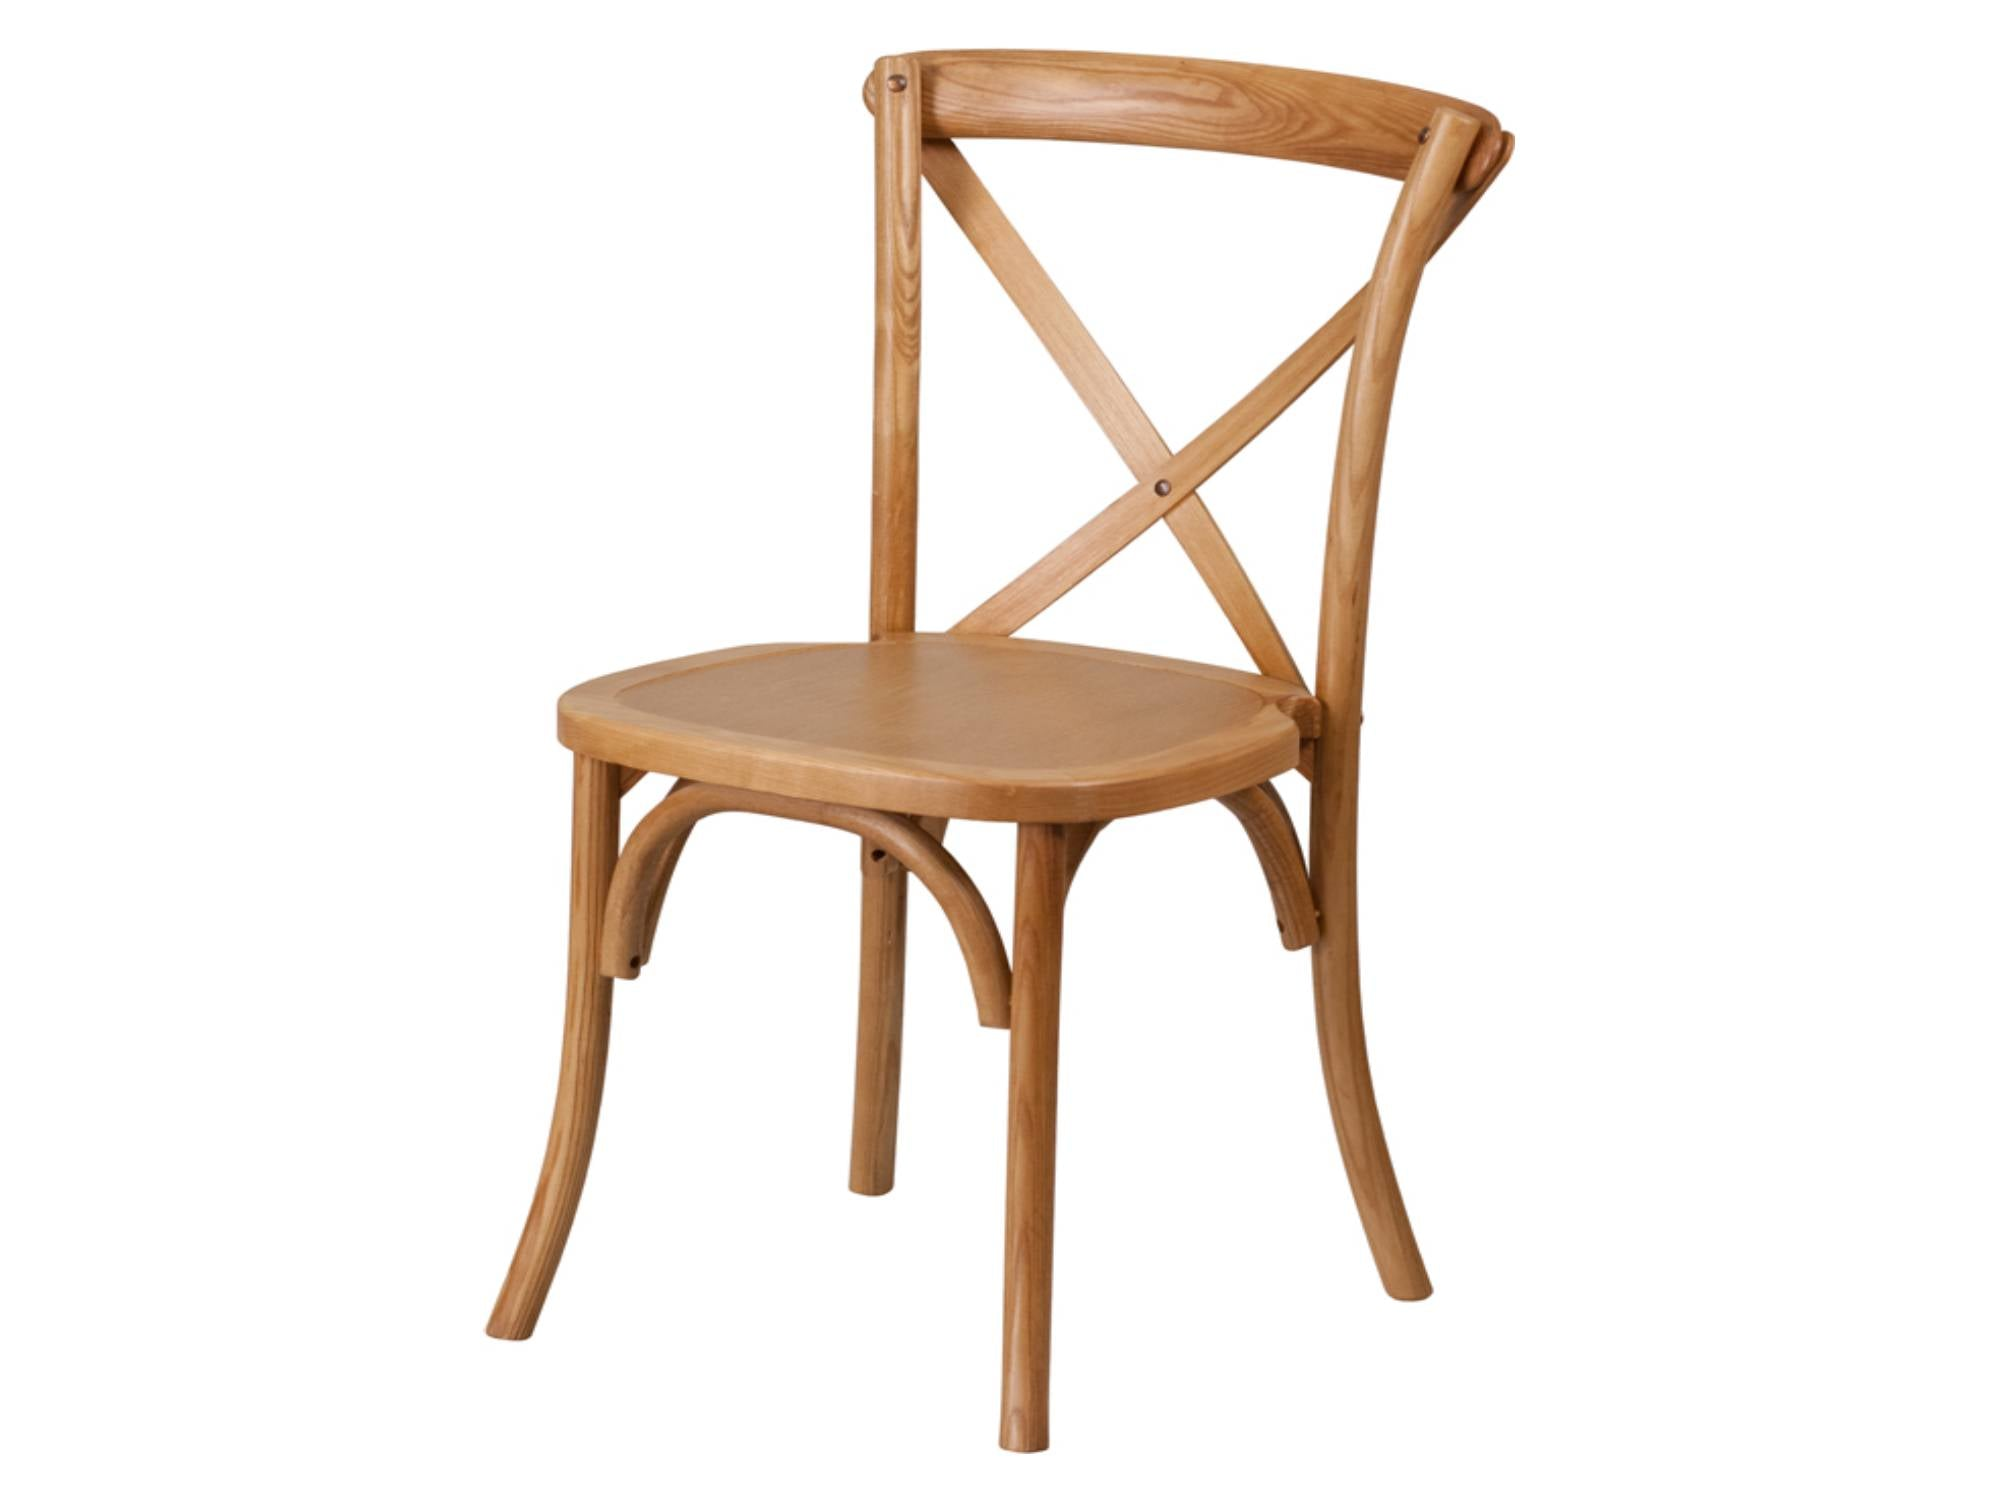 WOOD CROSS BACK CHAIR - OAK WOOD